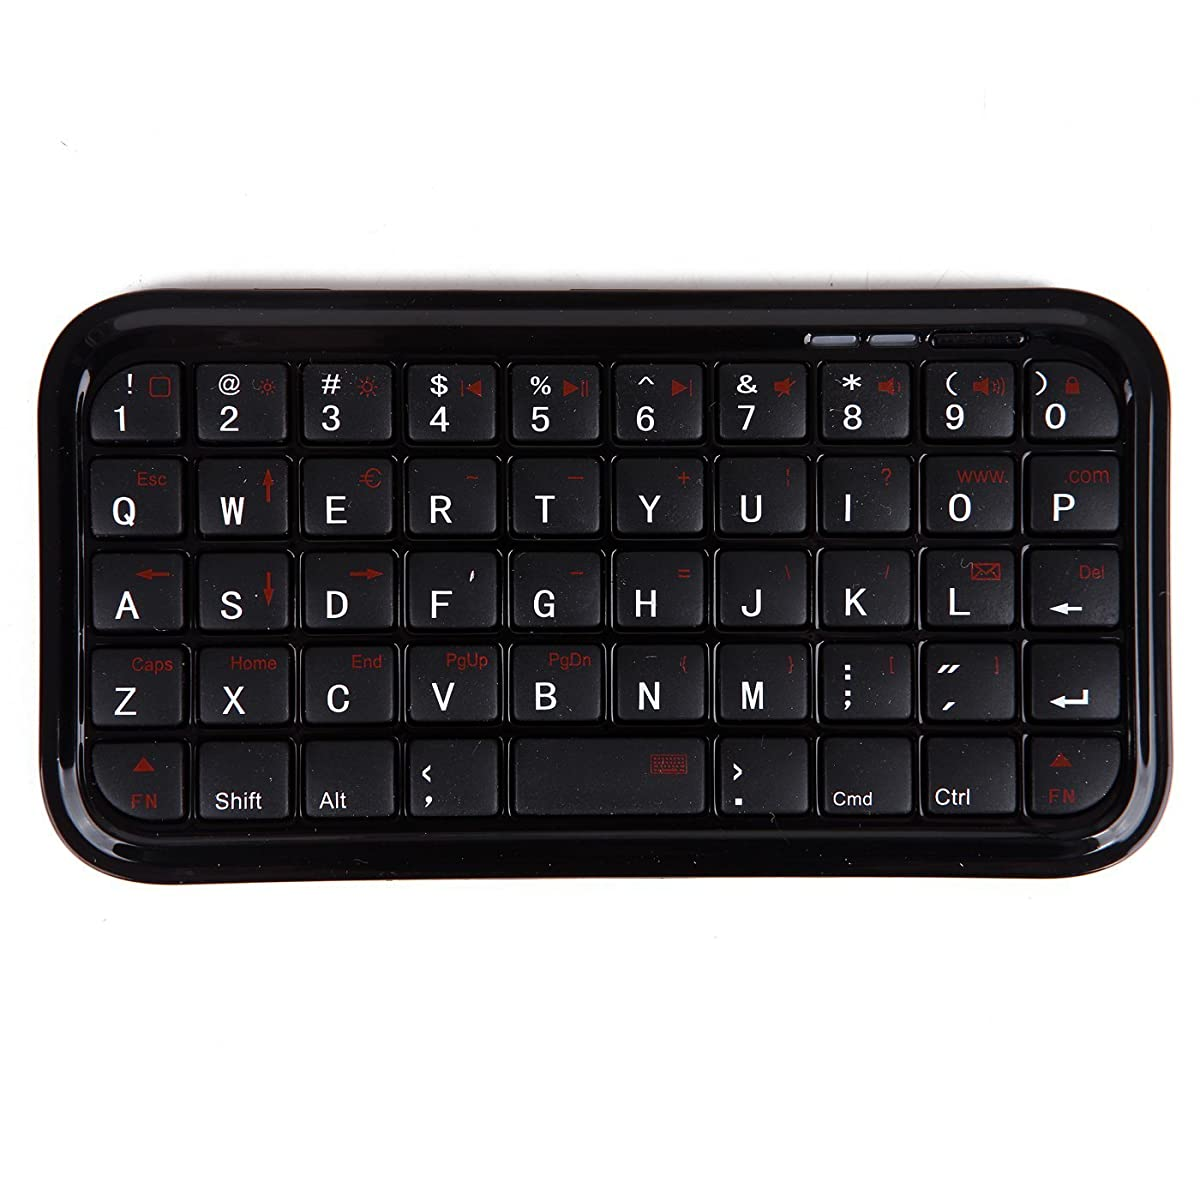 HDE Bluetooth 3.0 Keyboard Mini Travel Size Wireless Pocket Keypad for Sony Playstation PS4/Tablet/Smartphones